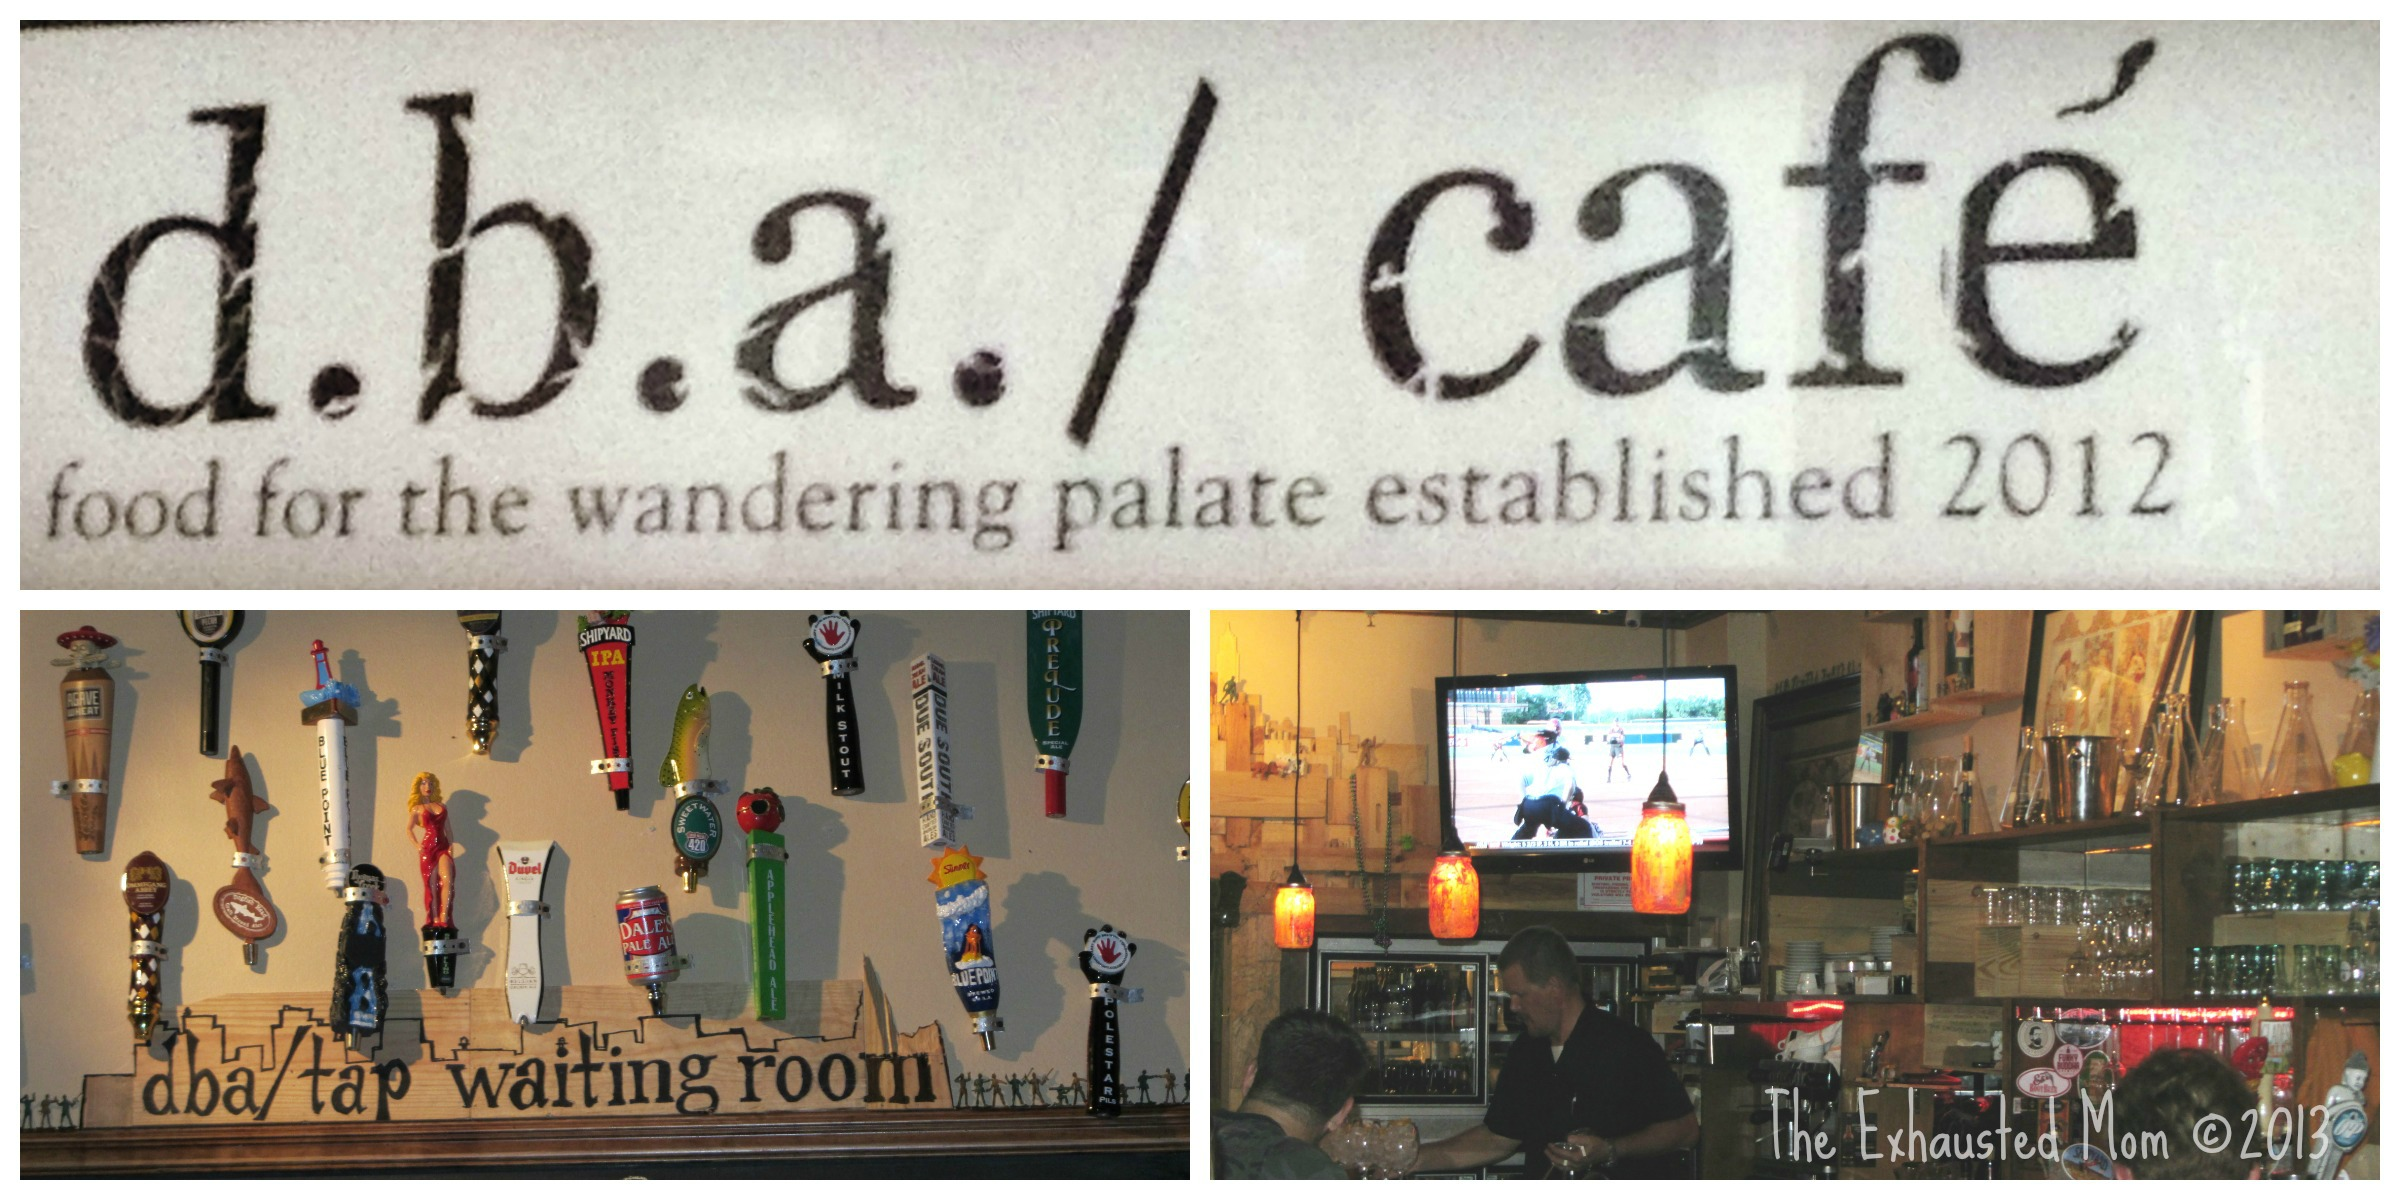 d.b.a./cafe ~ South Florida Finds